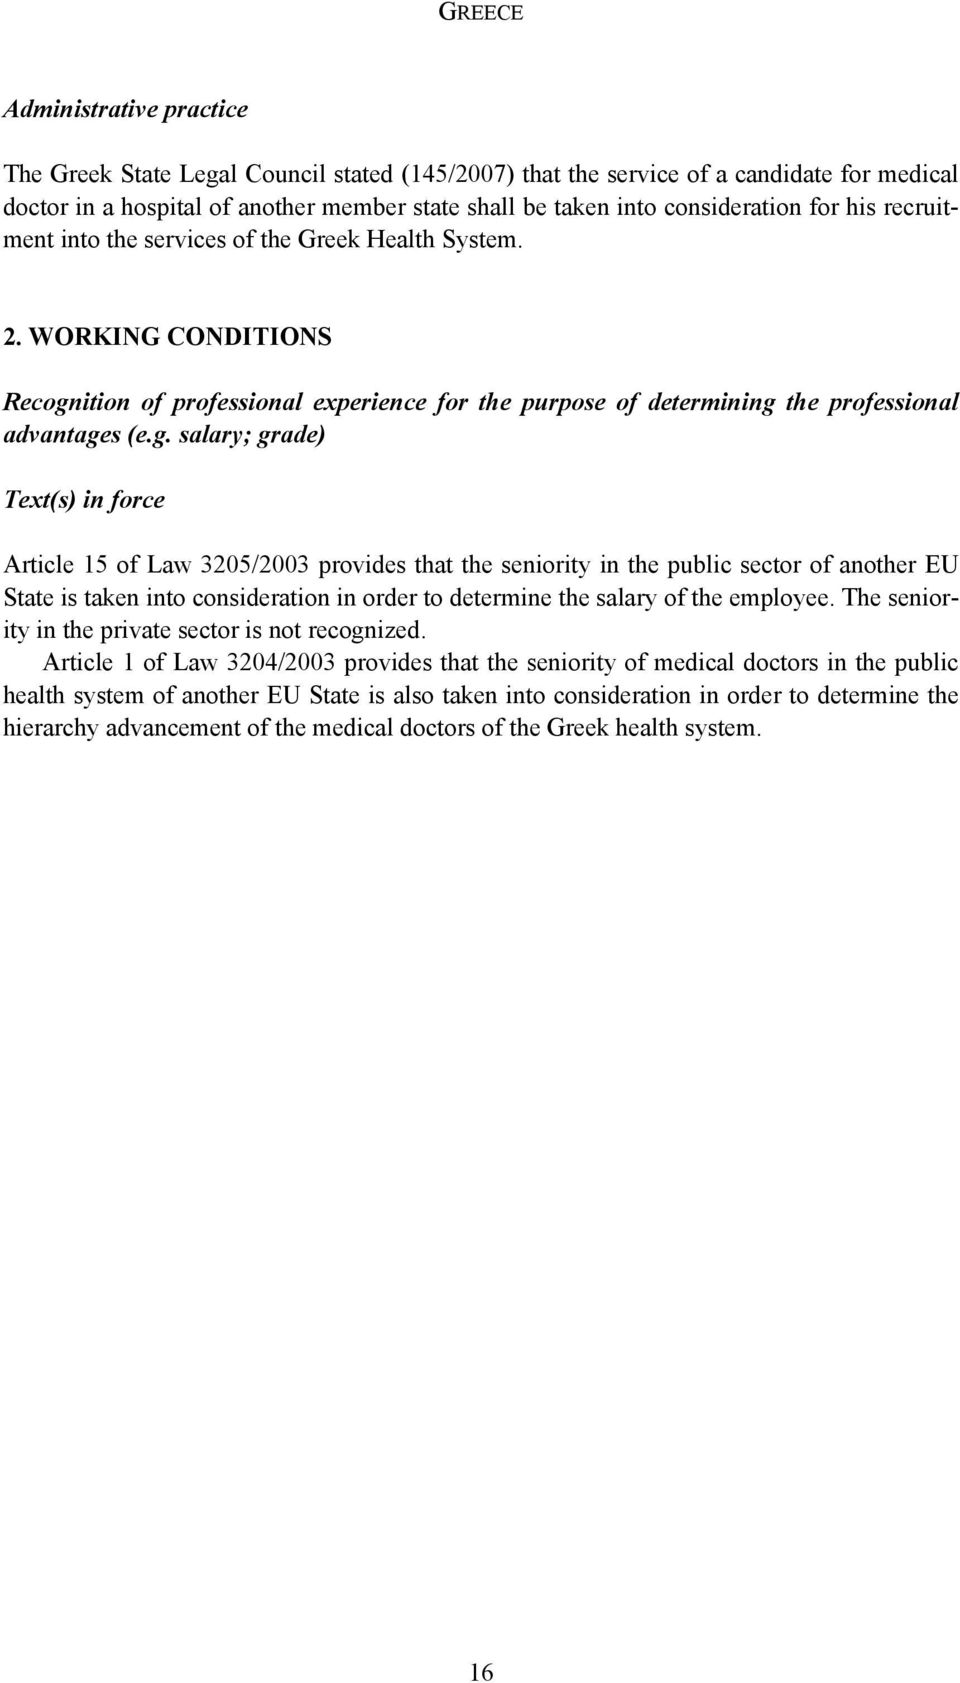 ition of professional experience for the purpose of determining